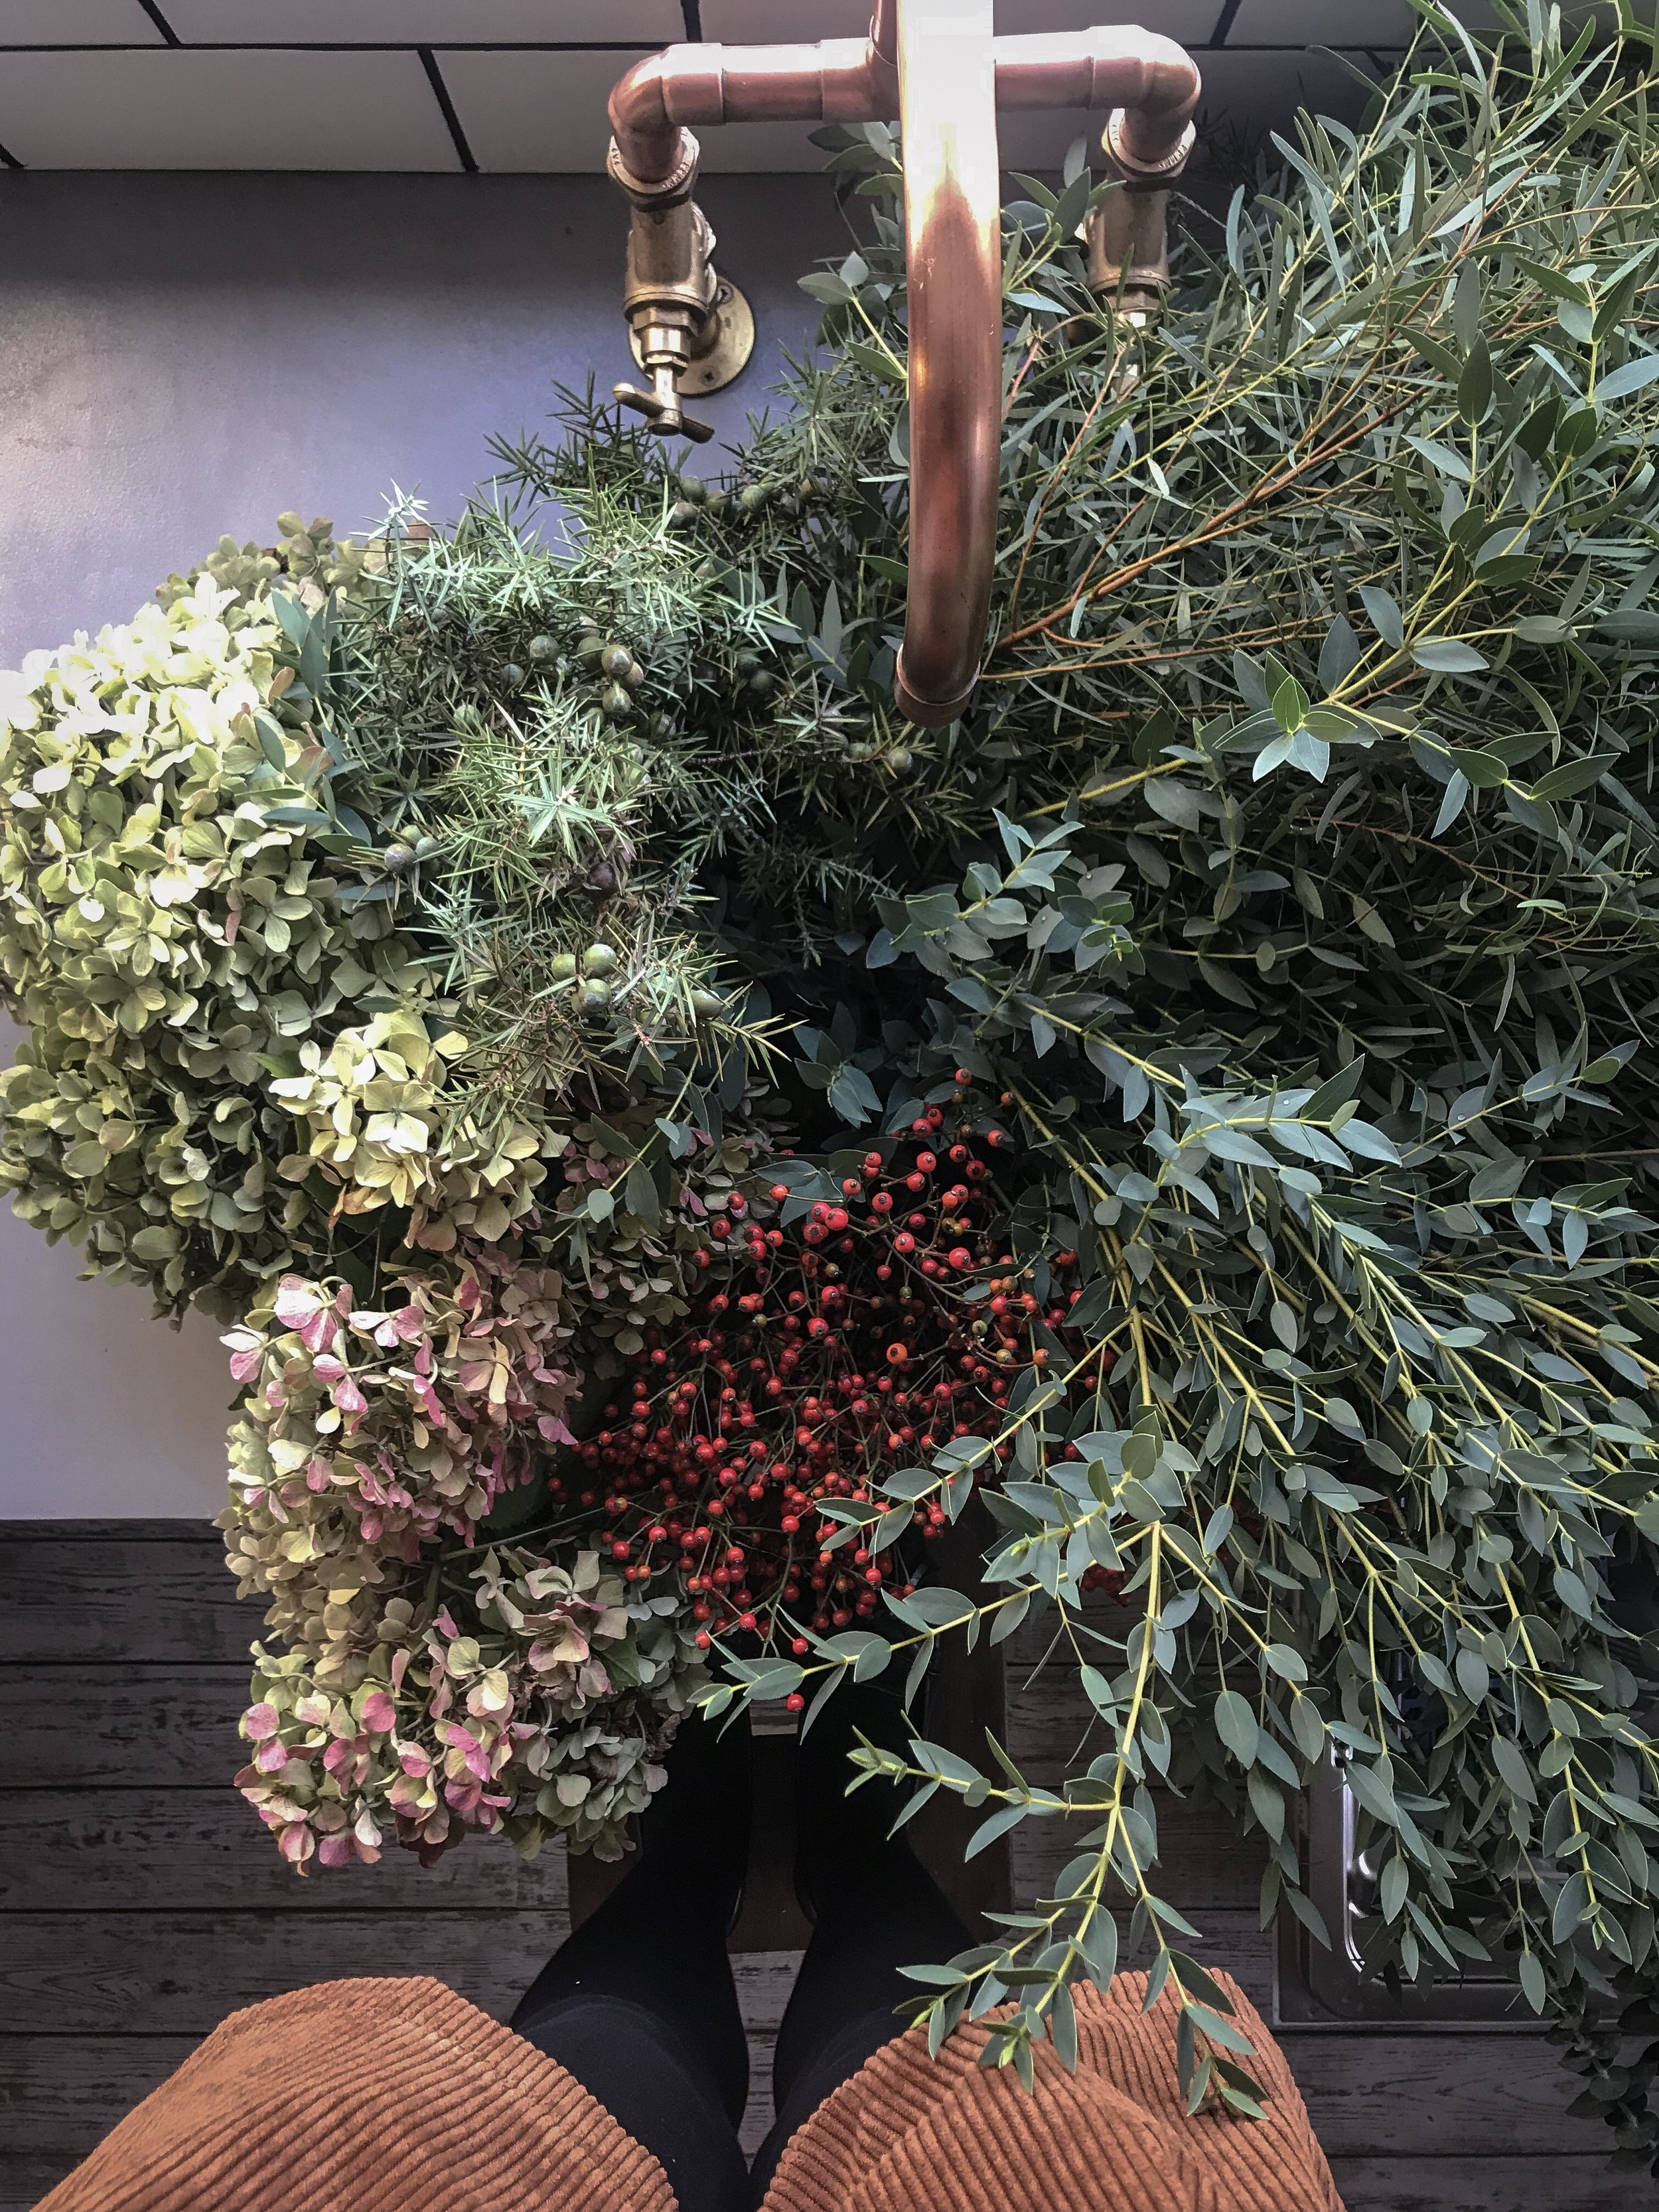 foraged materials for wreath making